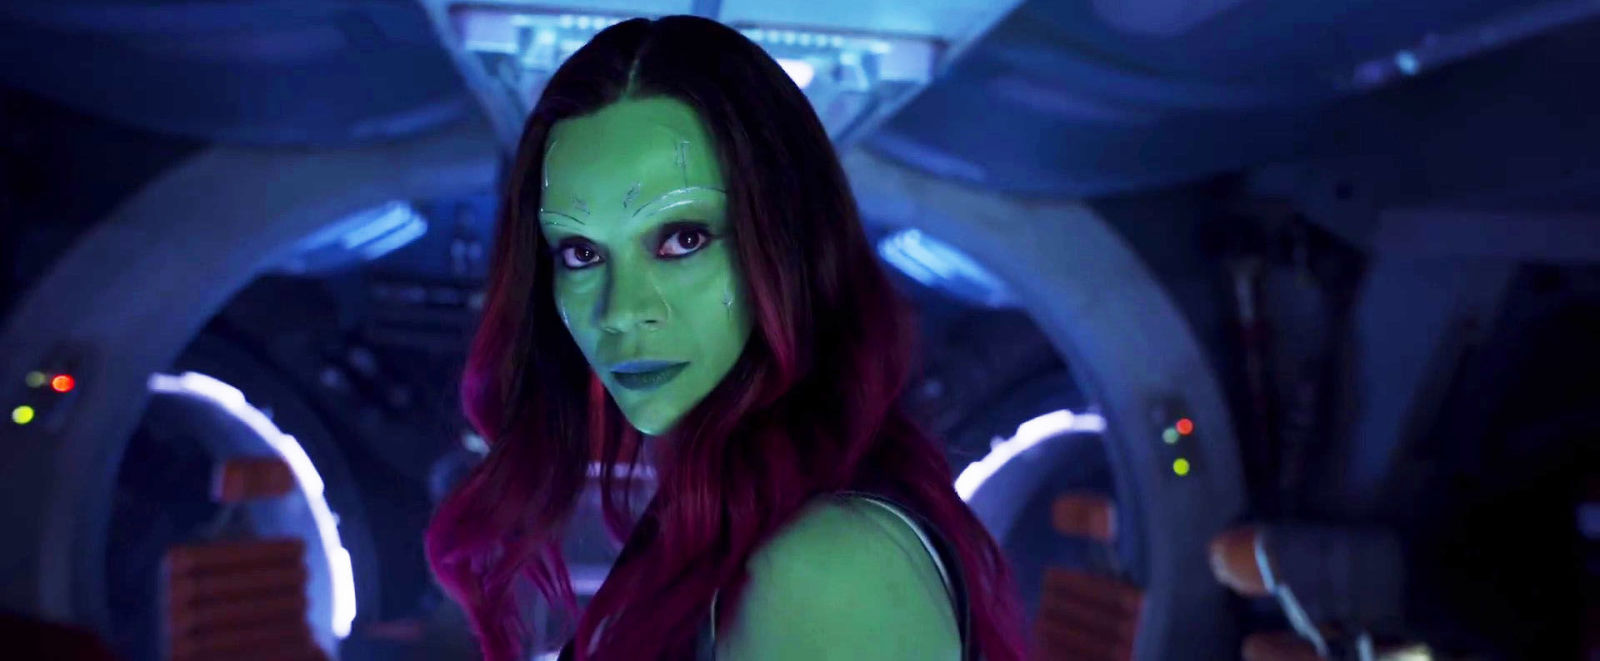 Zoe Saldana, star of Guardians Of The Galaxy, has no clue what MCU stands for